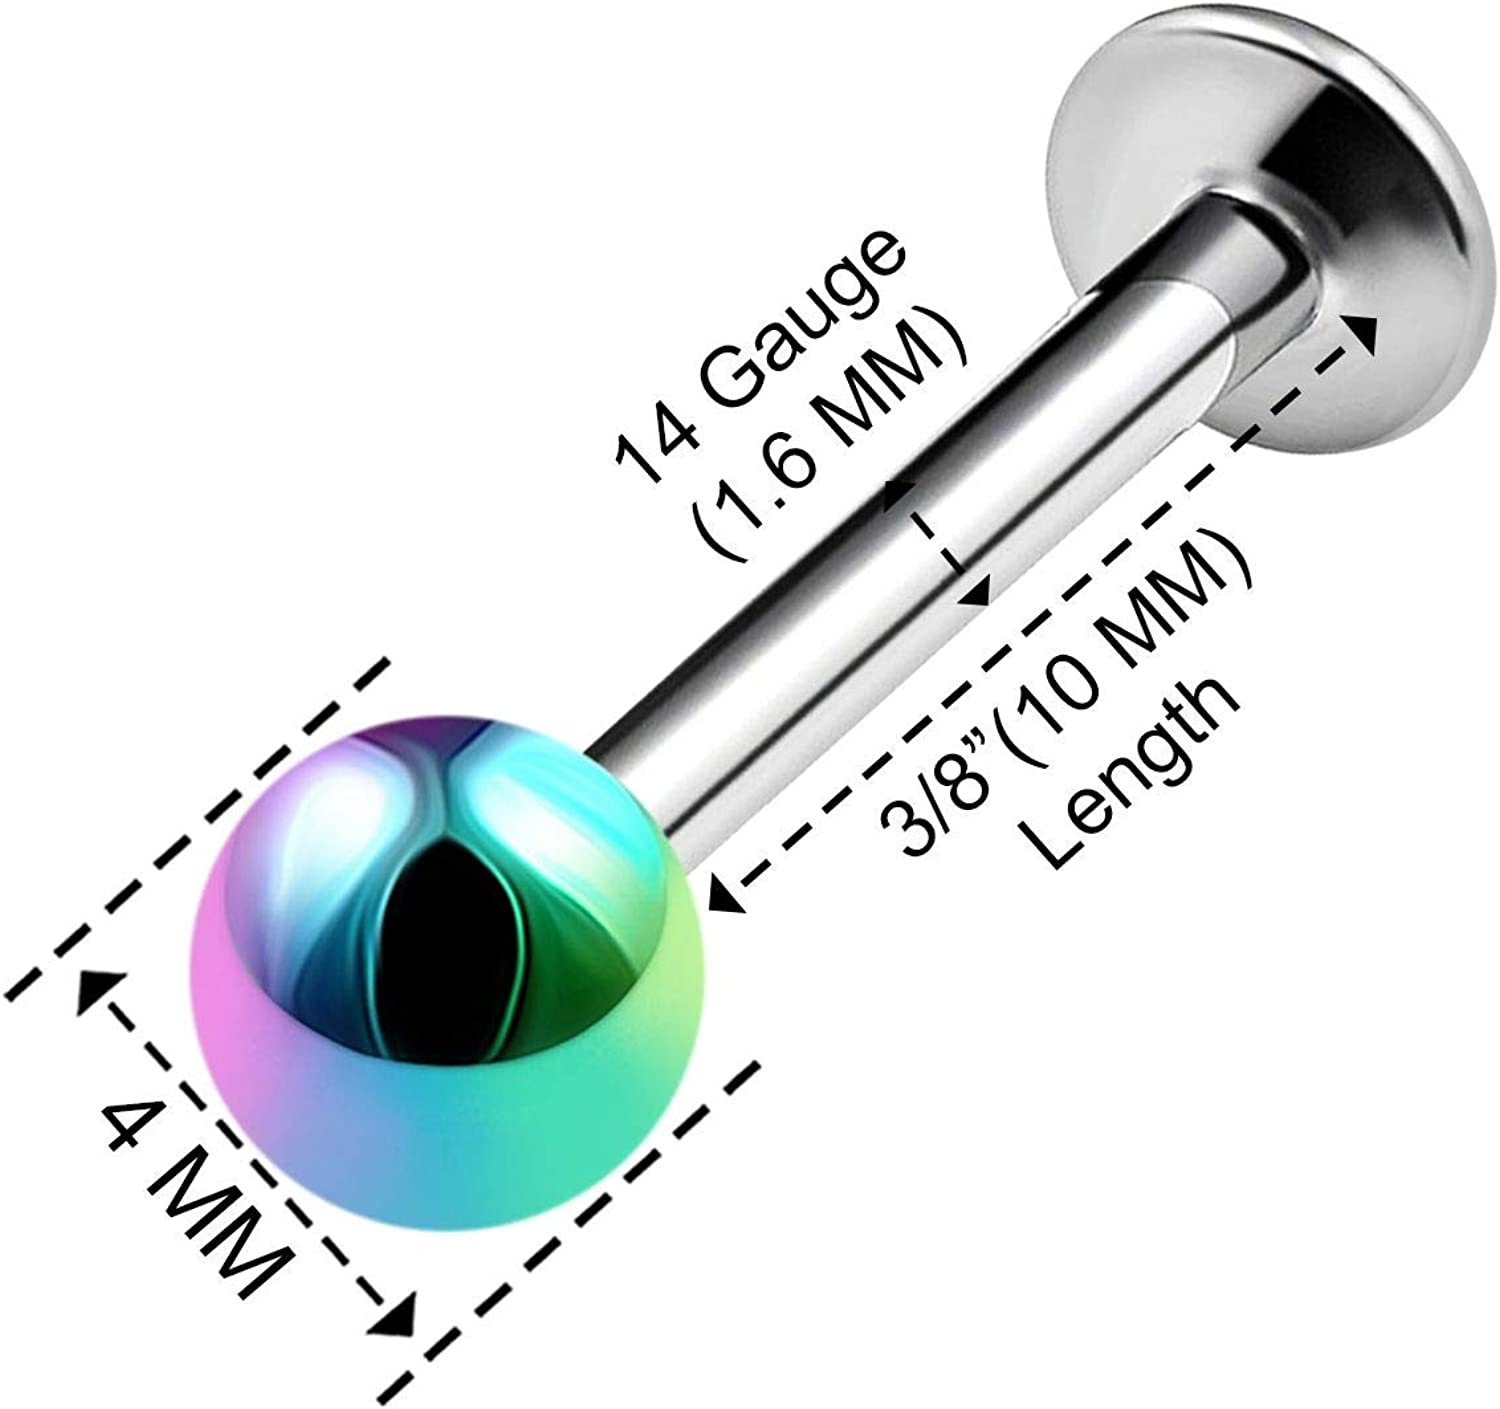 BanaVega 2PCS Stainless Steel Rainbow Labret Lip Rings 14 Gauge 4mm Ball Auricle Earrings Cartilage Piercing Jewelry See More Sizes